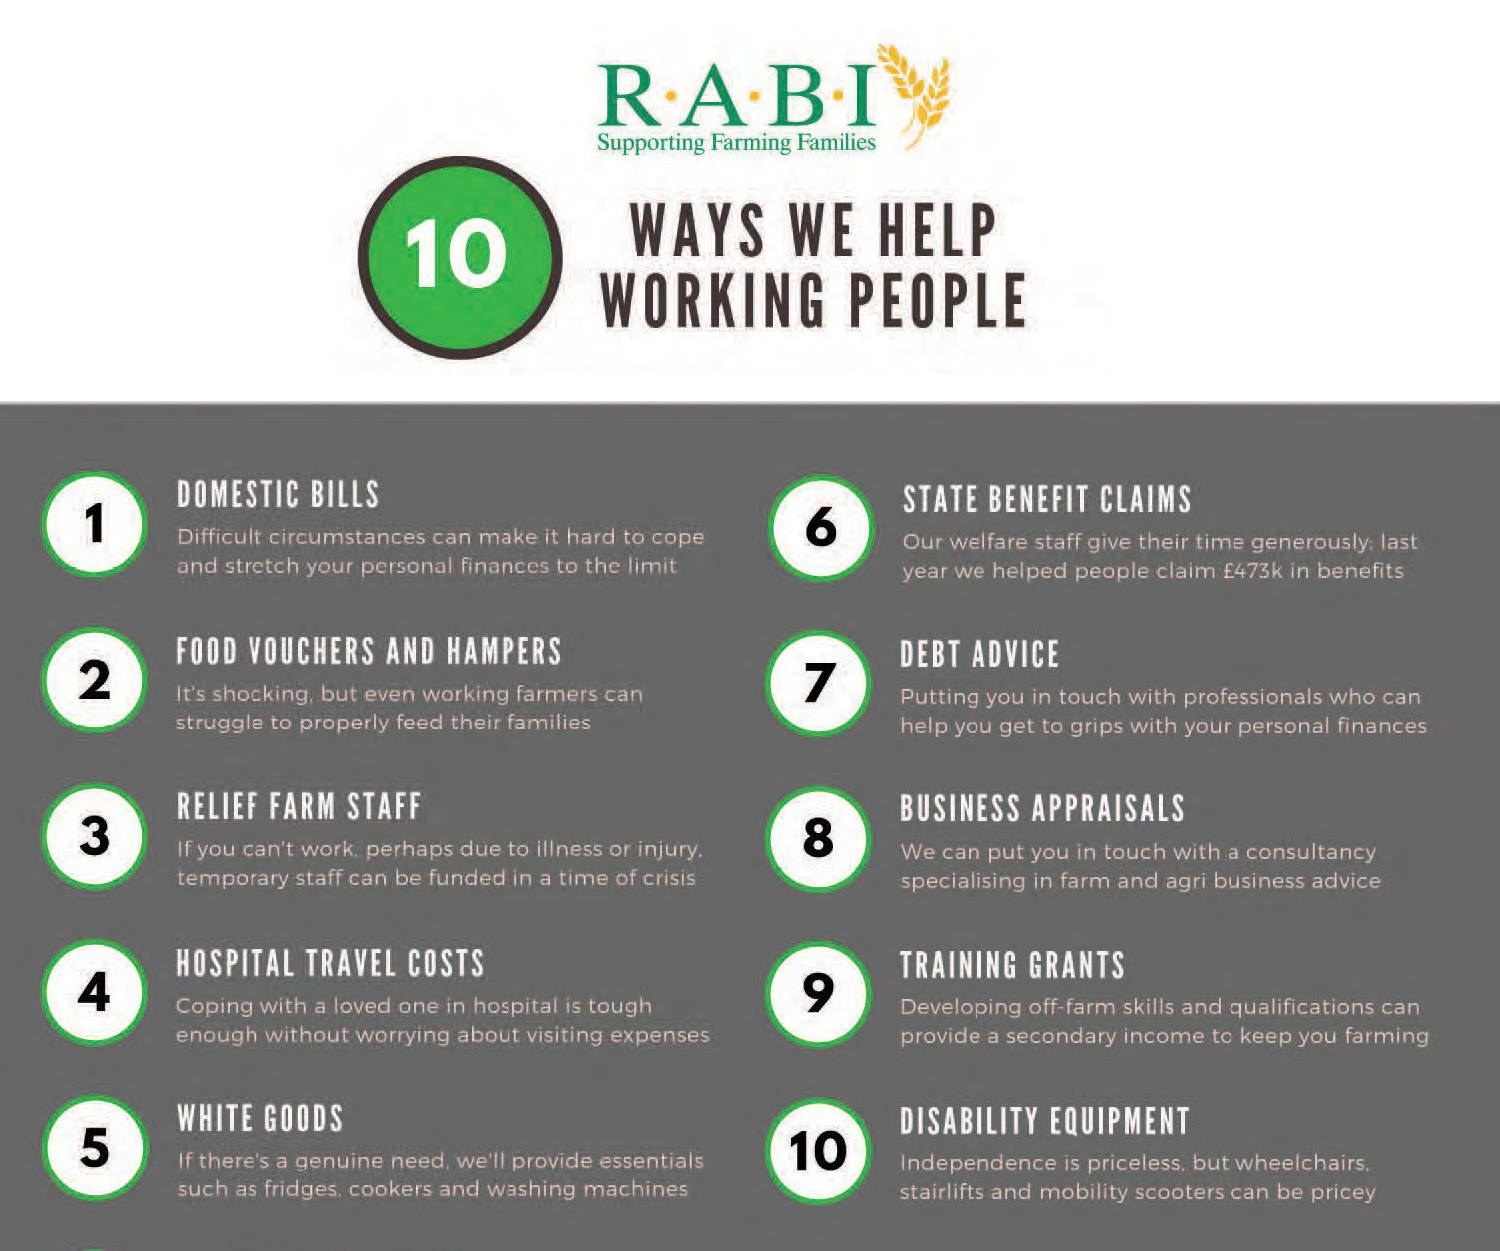 R.A.B.I Charity Information